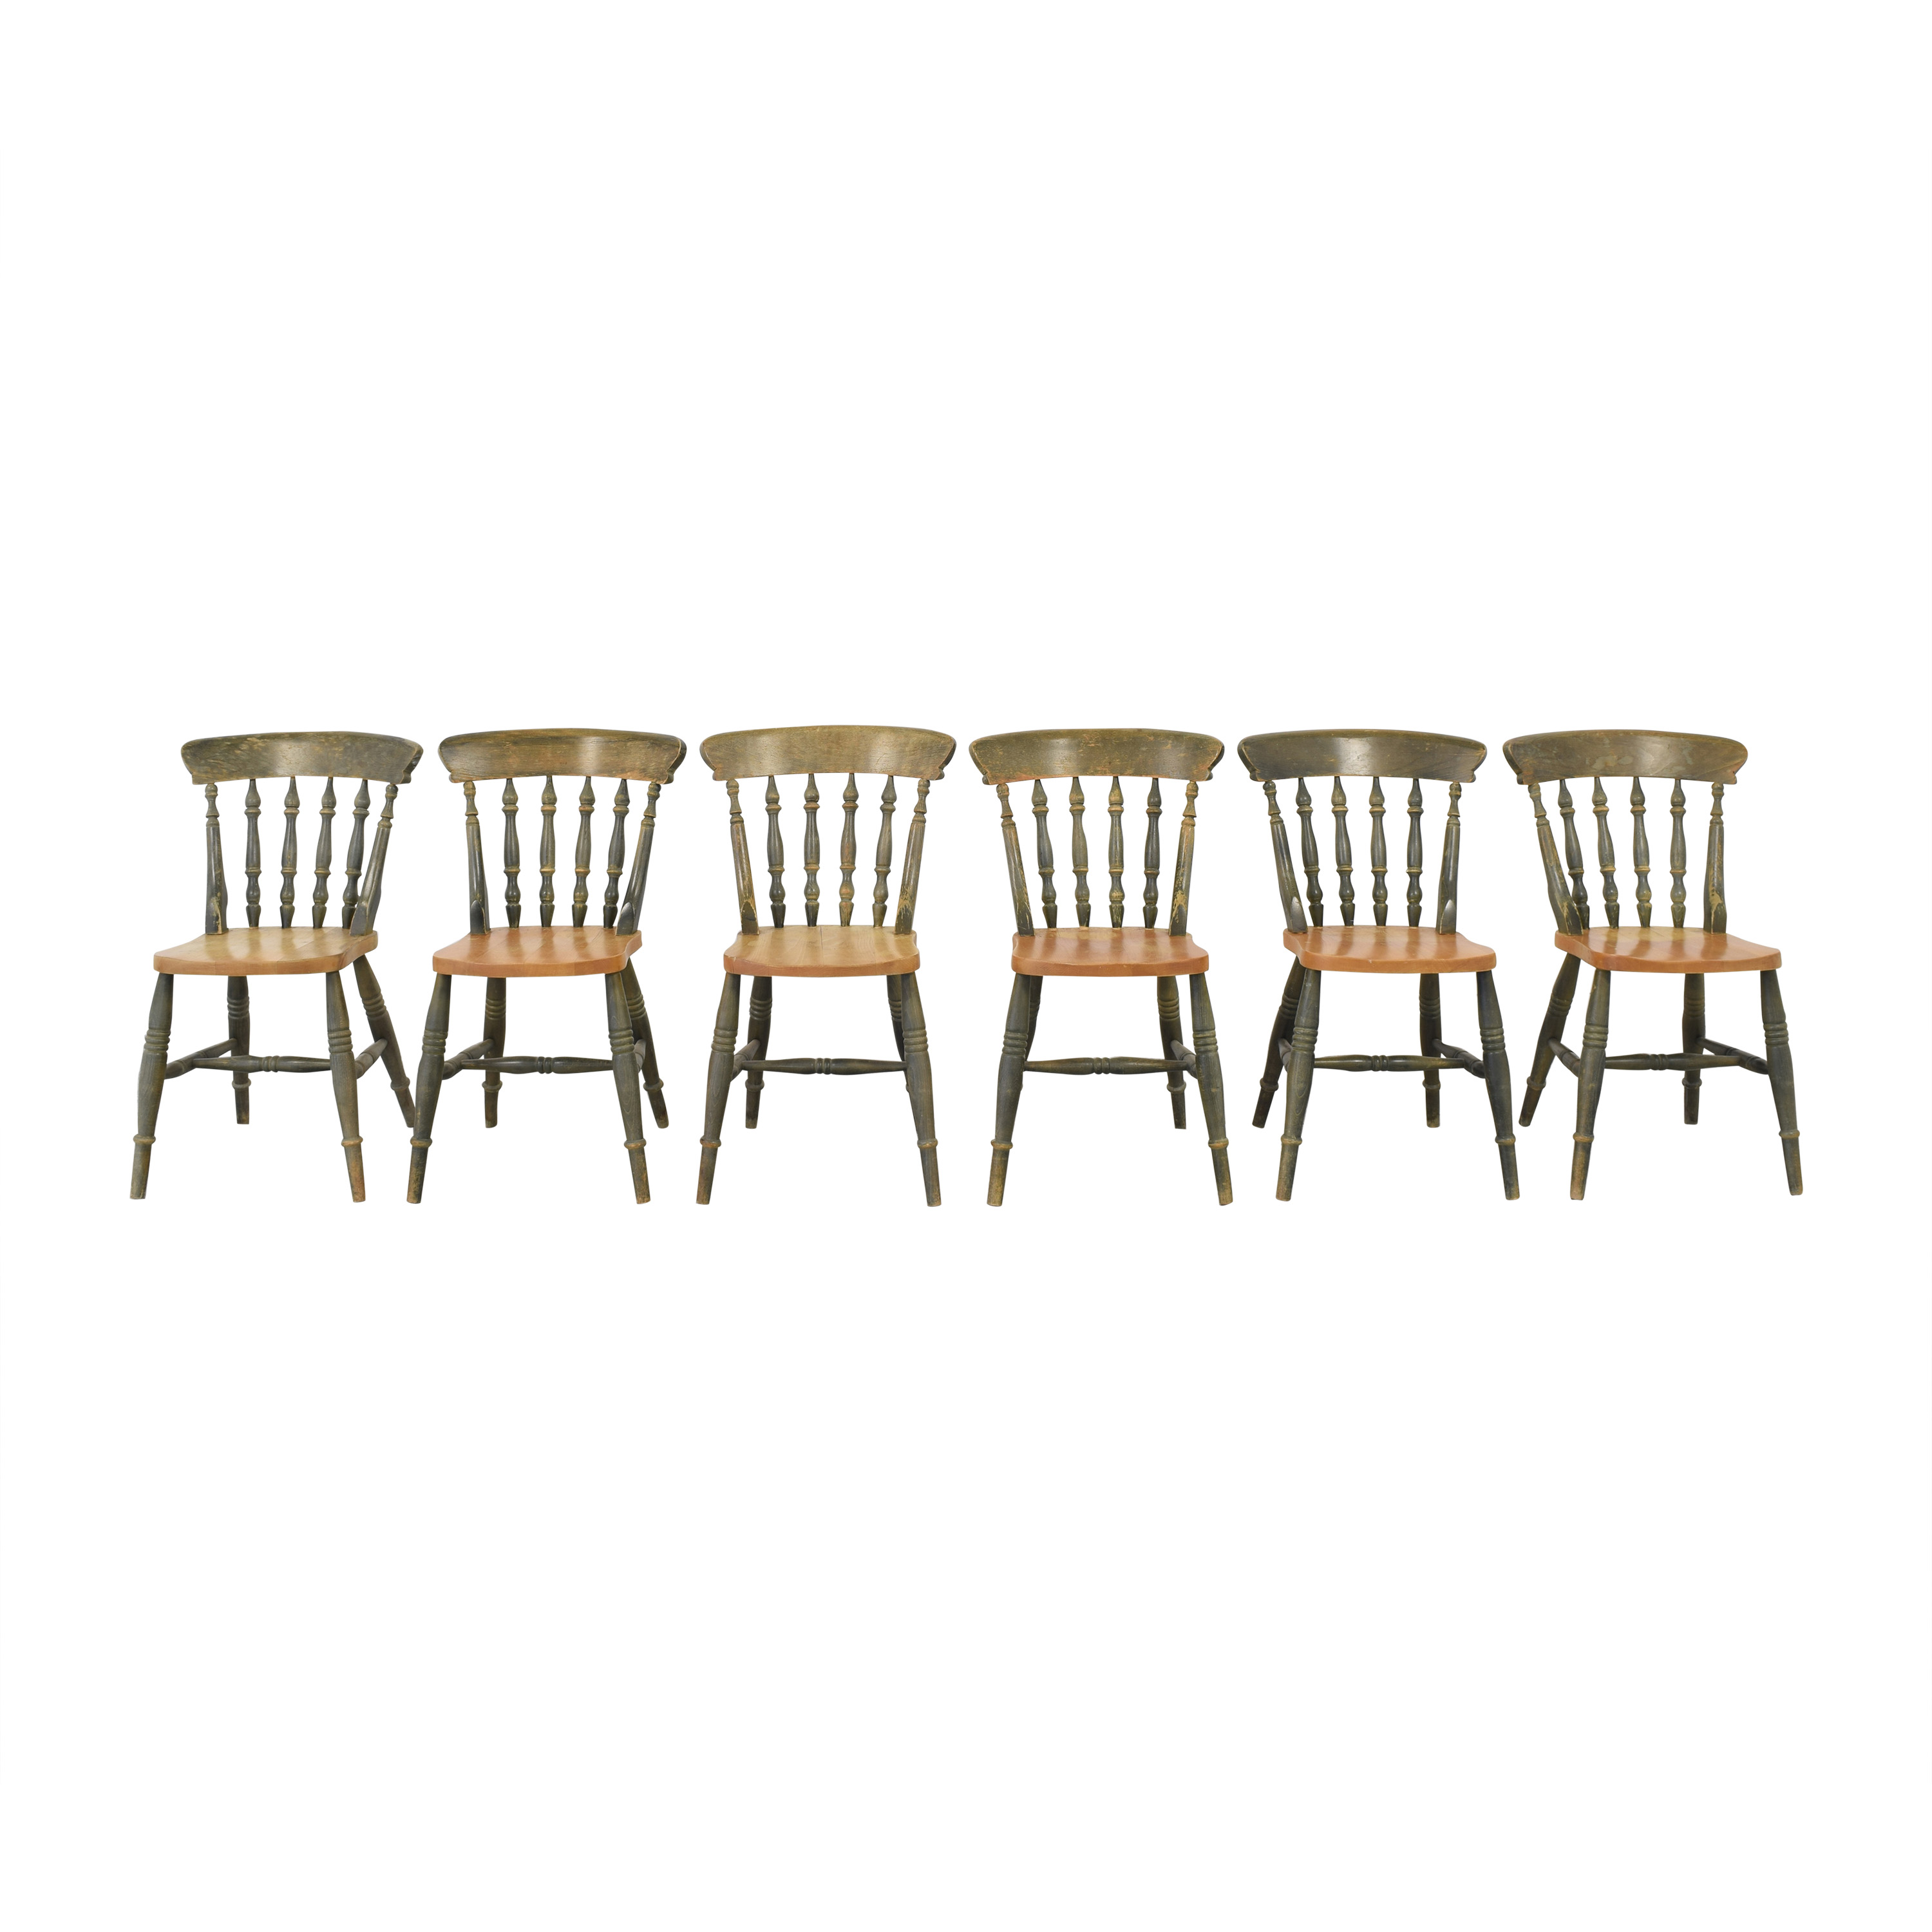 Two Tone Dining Chairs Chairs